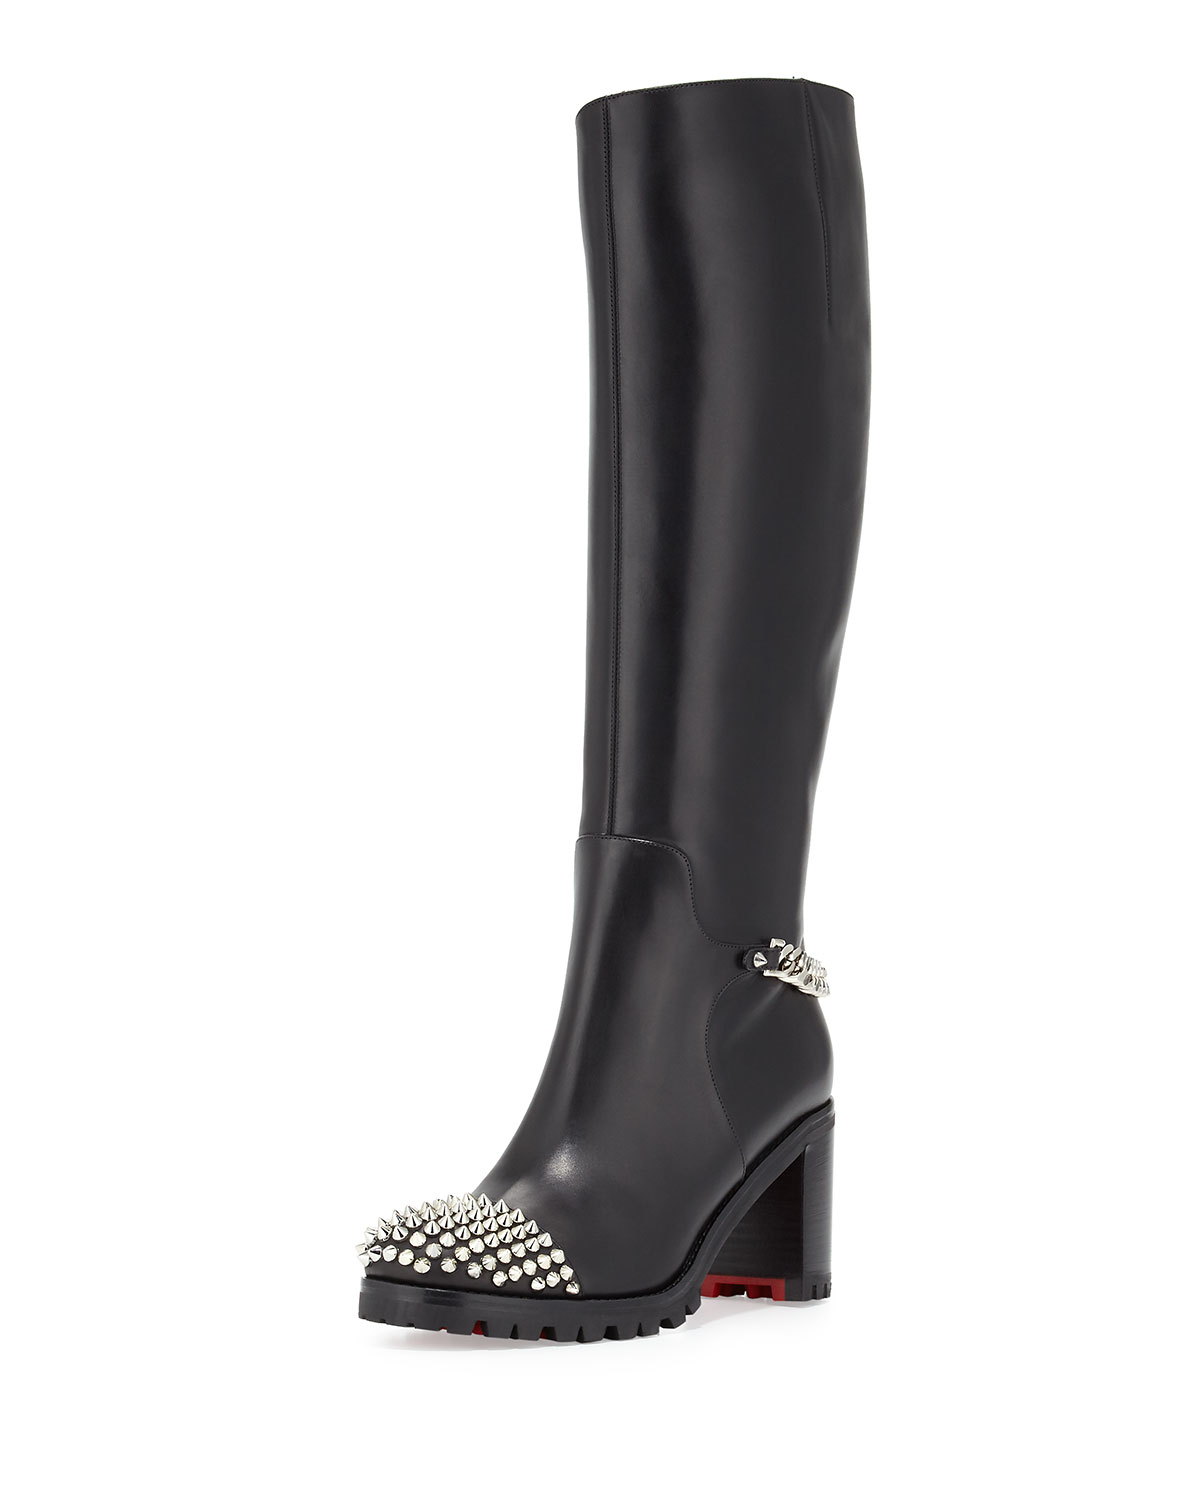 cost of christian louboutin shoes - christian louboutin ottaka suede fringe open-toe red sole bootie ...